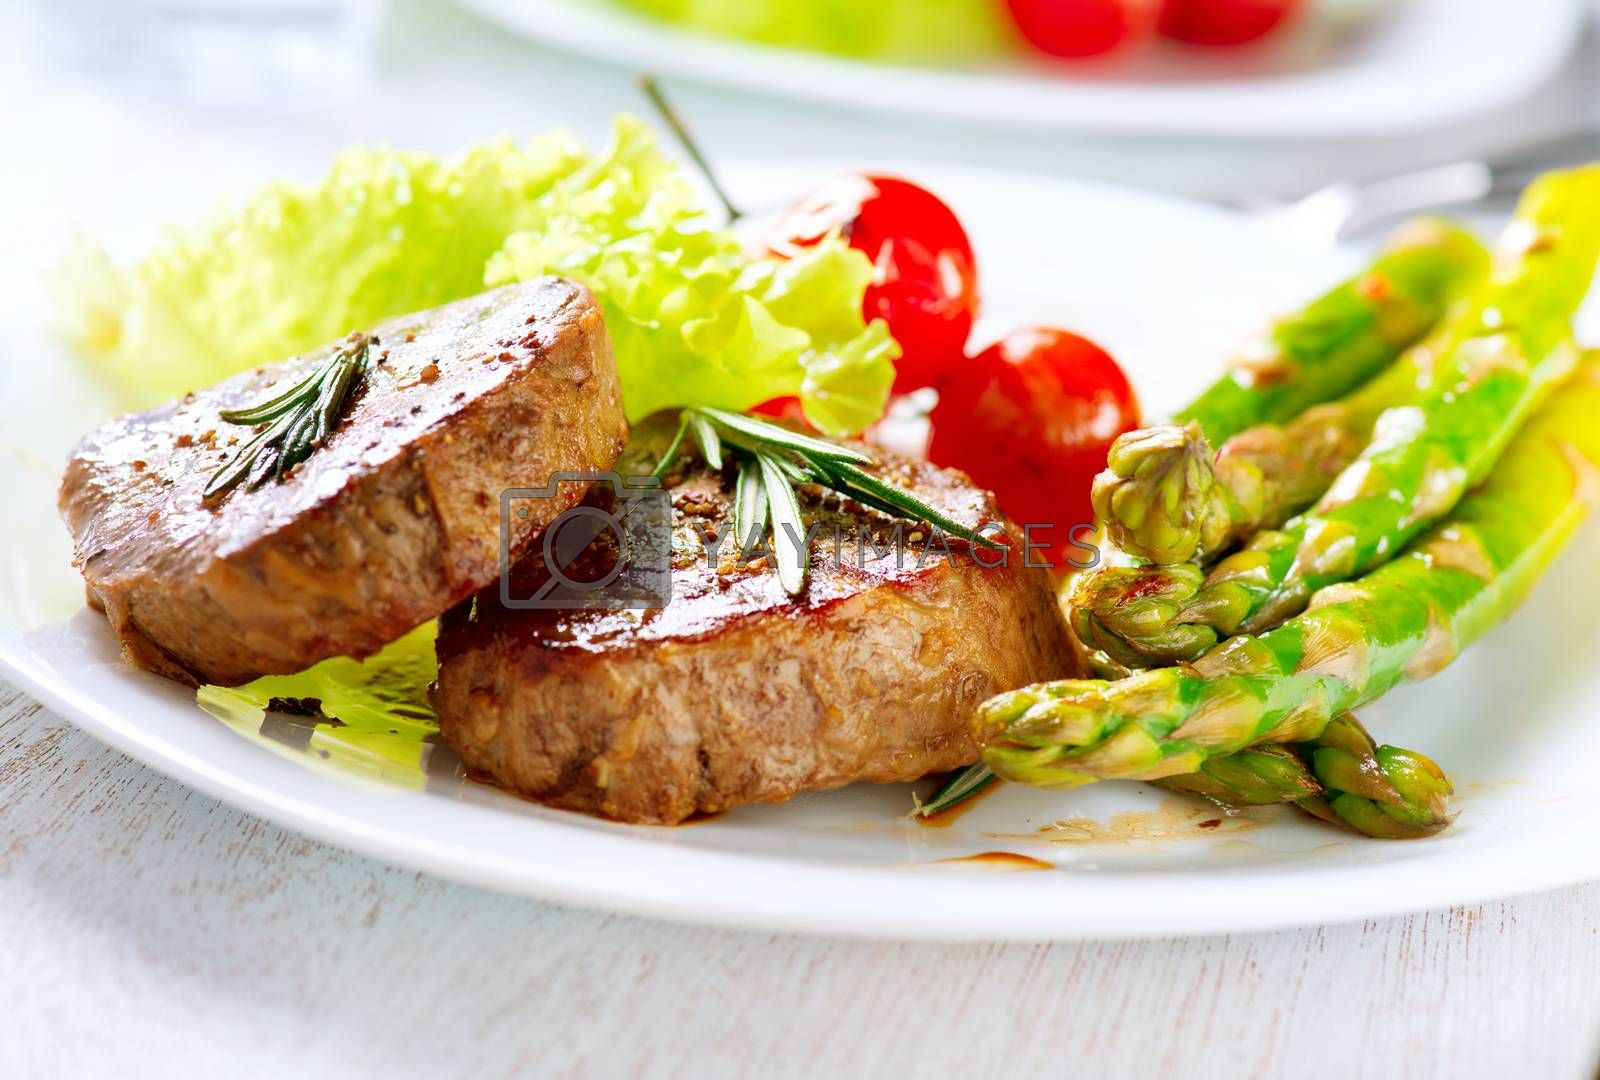 Grilled Beef Steak Meat with Asparagus and Cherry Tomato by Subbotina Anna